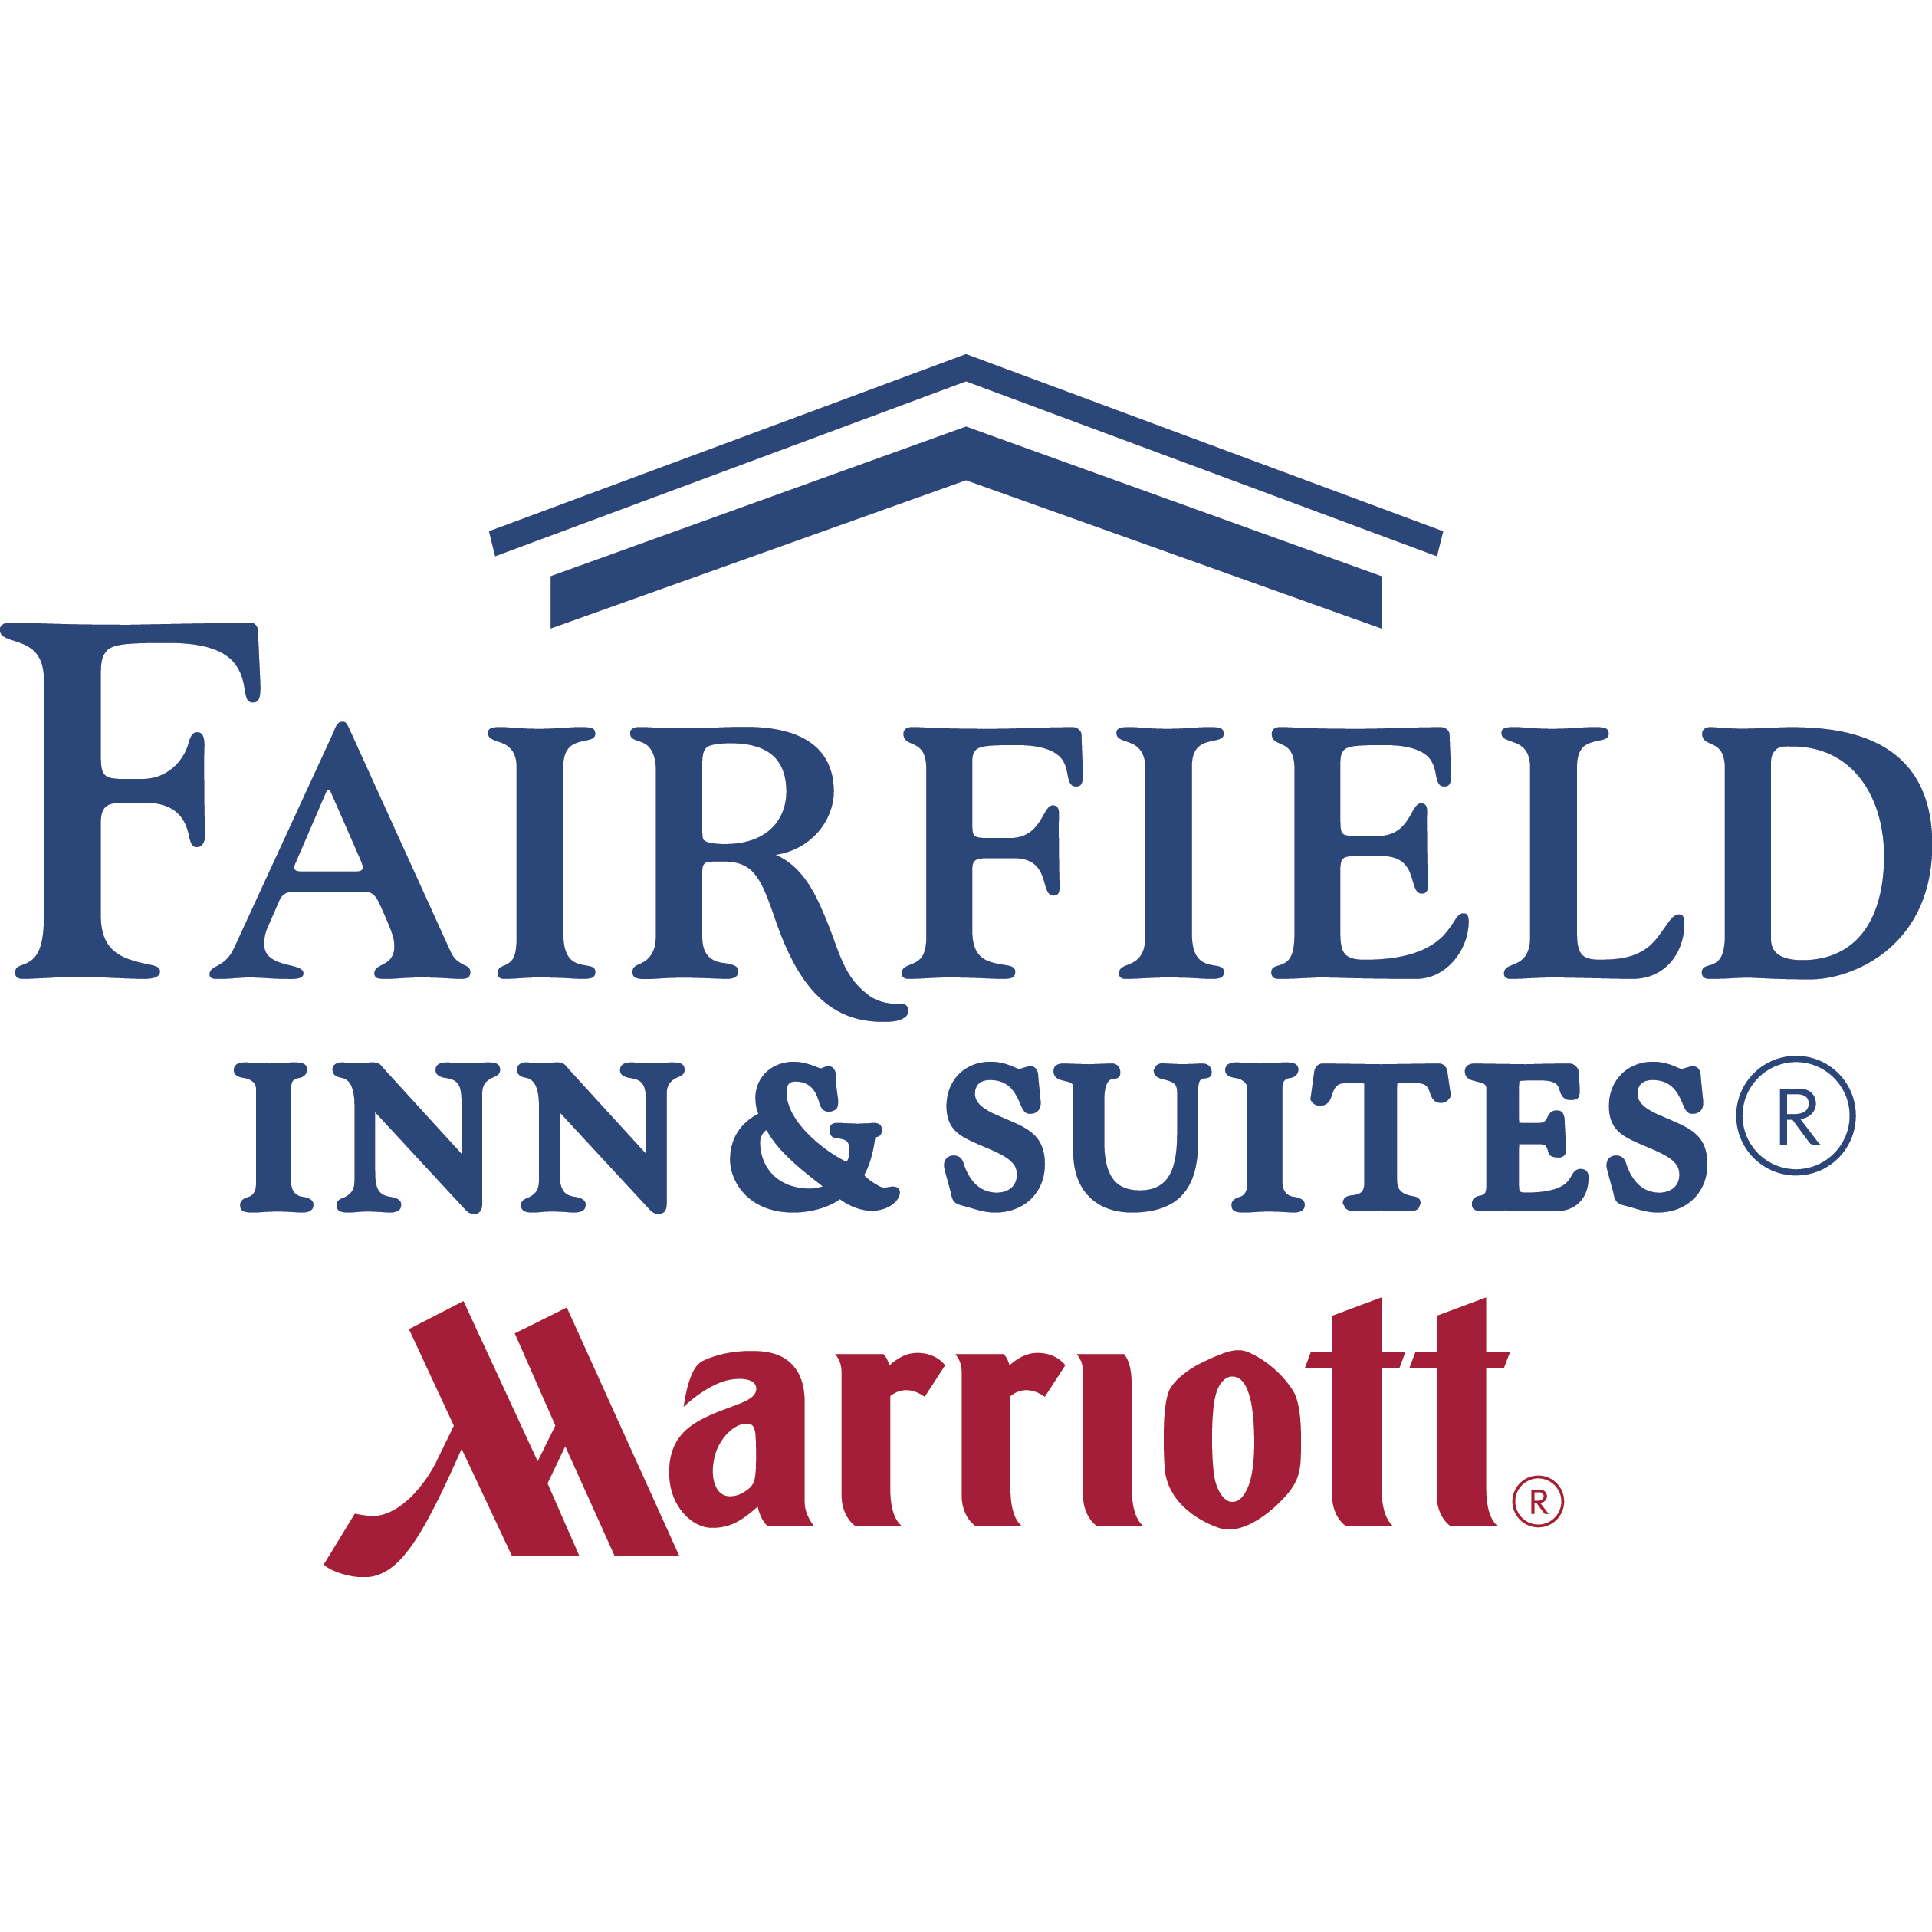 Fairfield Inn & Suites by Marriott Houston Westchase - Houston, TX - Hotels & Motels